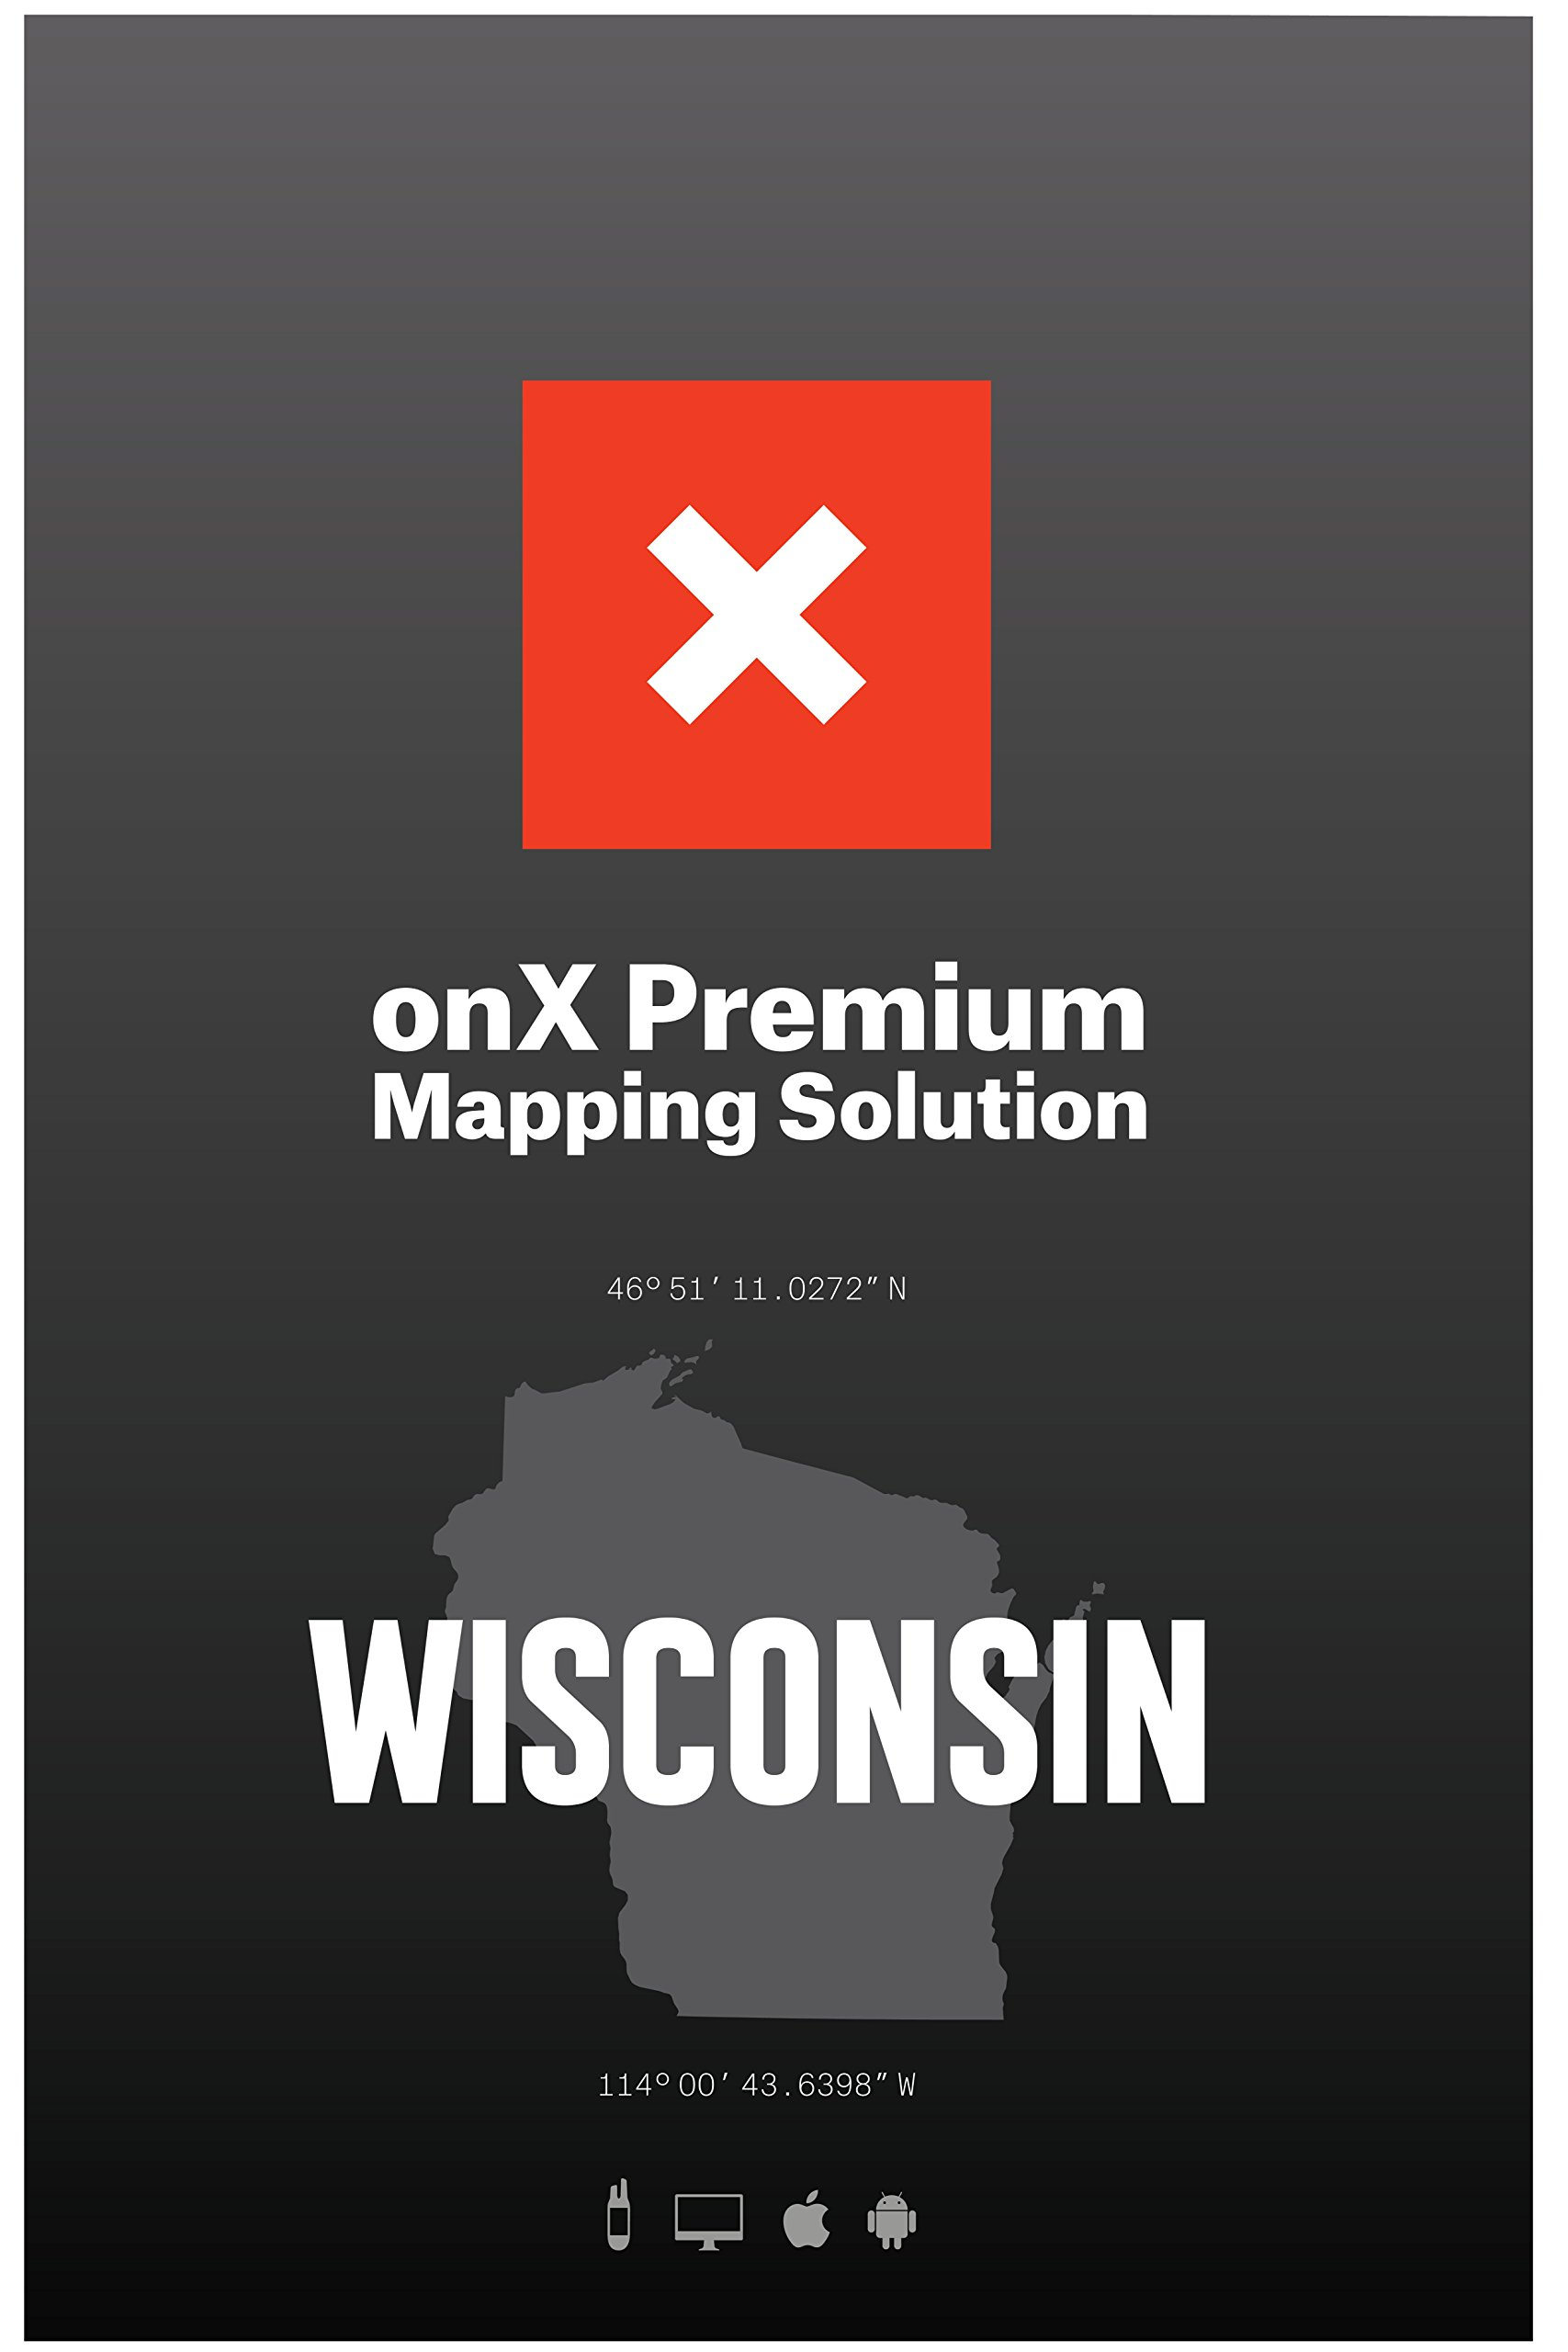 ONX Hunt: Wisconsin Hunt Chip for Garmin GPS - Hunting Maps with Public & Private Land Ownership - Hunting Units - Includes Premium Membership Hunting App for iPhone, Android & Web by ONX